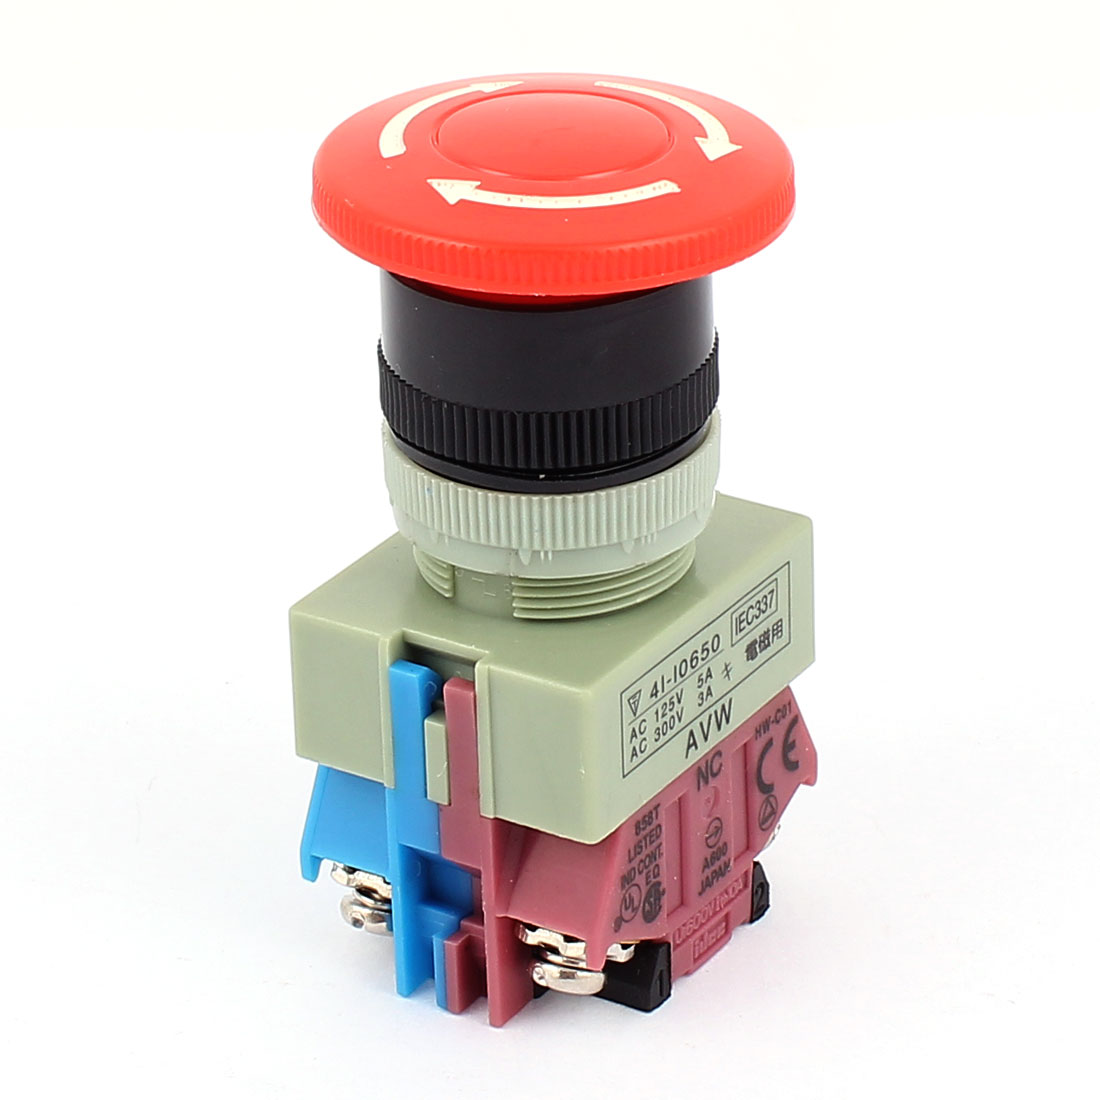 600V 10A DPST 4 Screw Terminals Emergency Stop Mushroom Push Button Switch